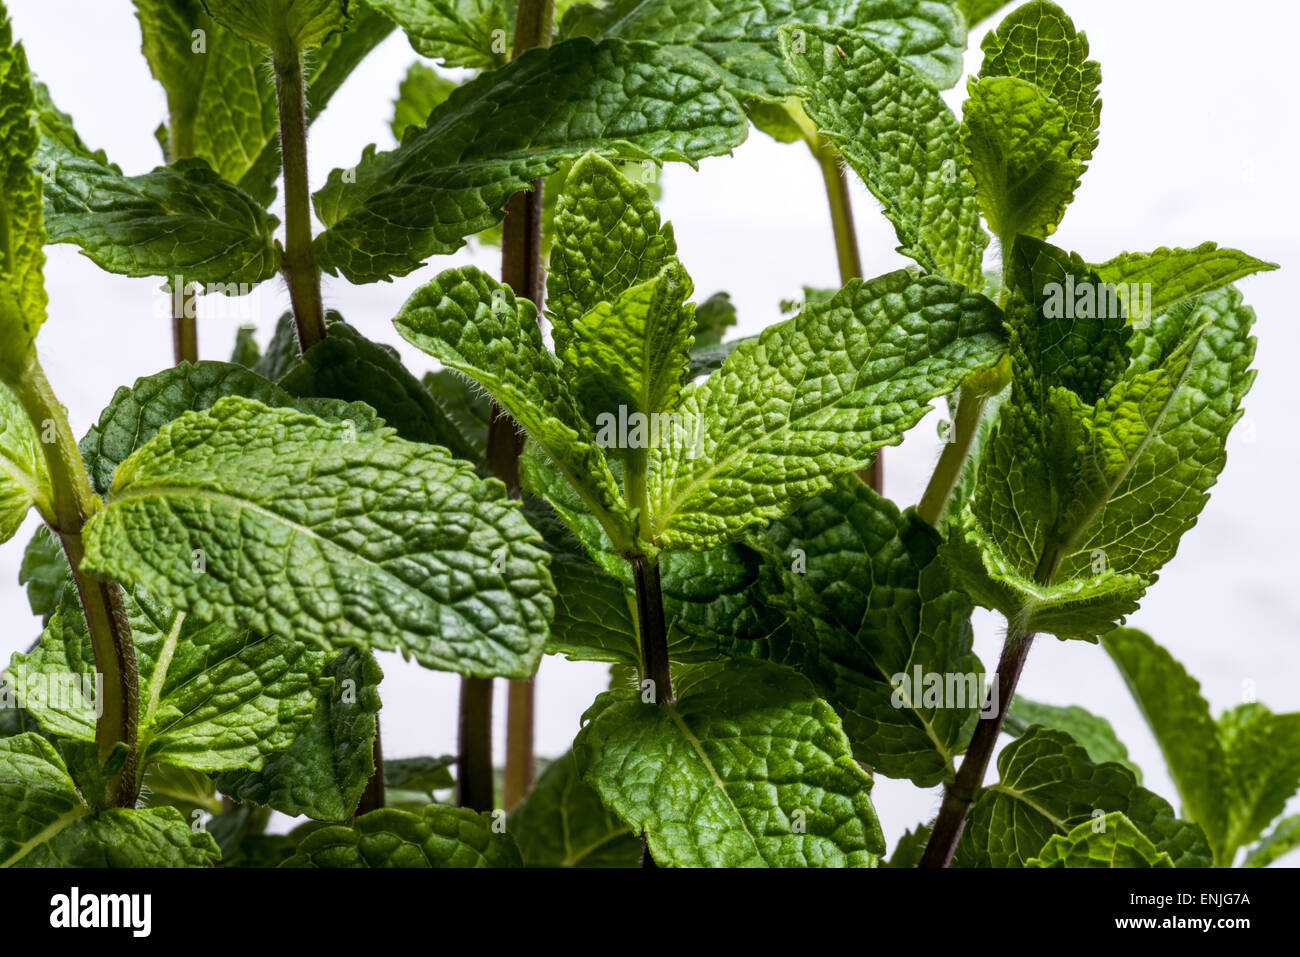 Herbs spices verdure health healthy food nutrition salad enrichment diet on white without background cutout cut - Stock Image